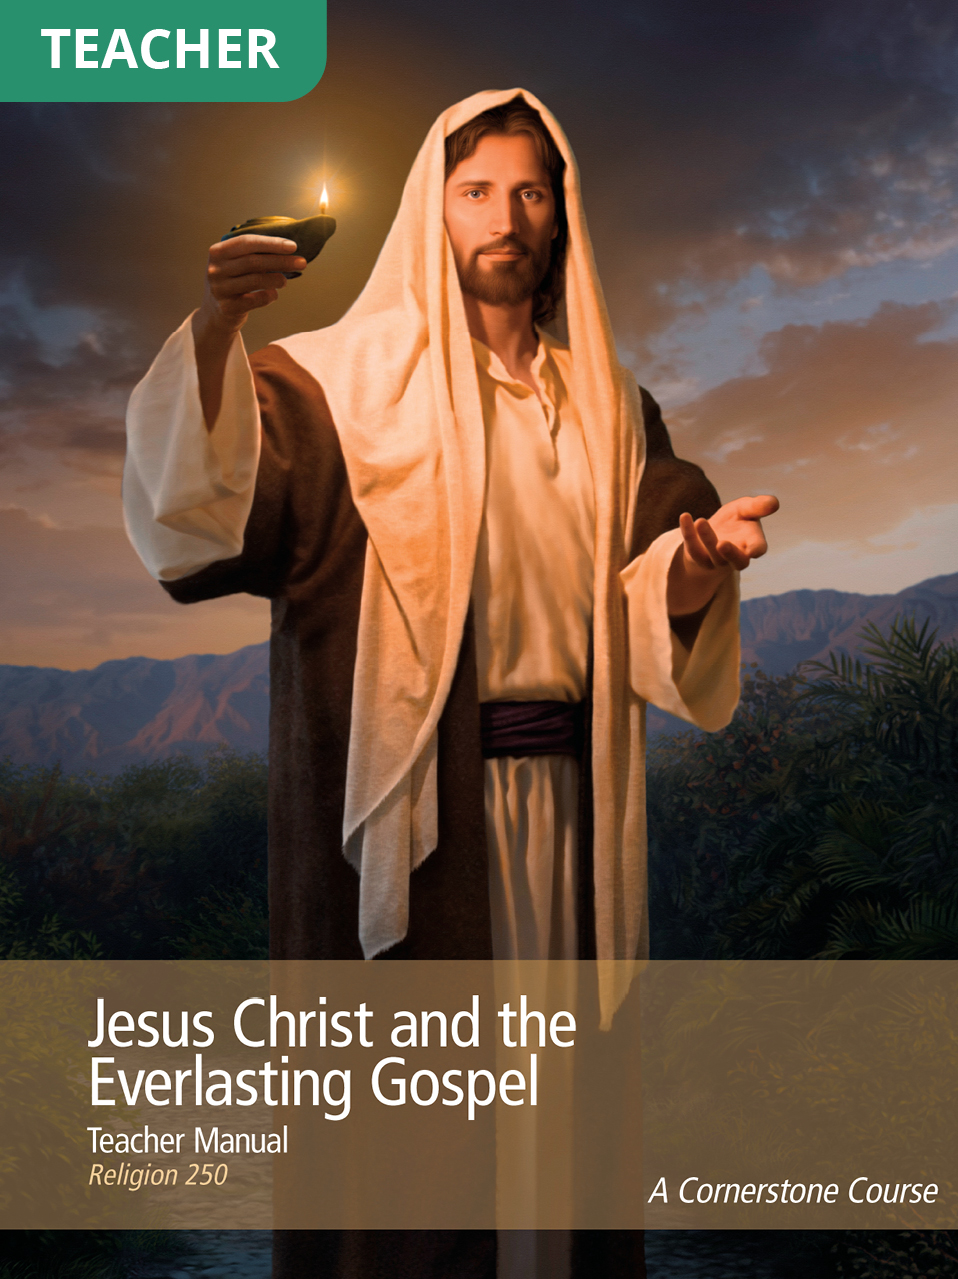 Jesus Christ and the Everlasting Gospel Teacher Manual